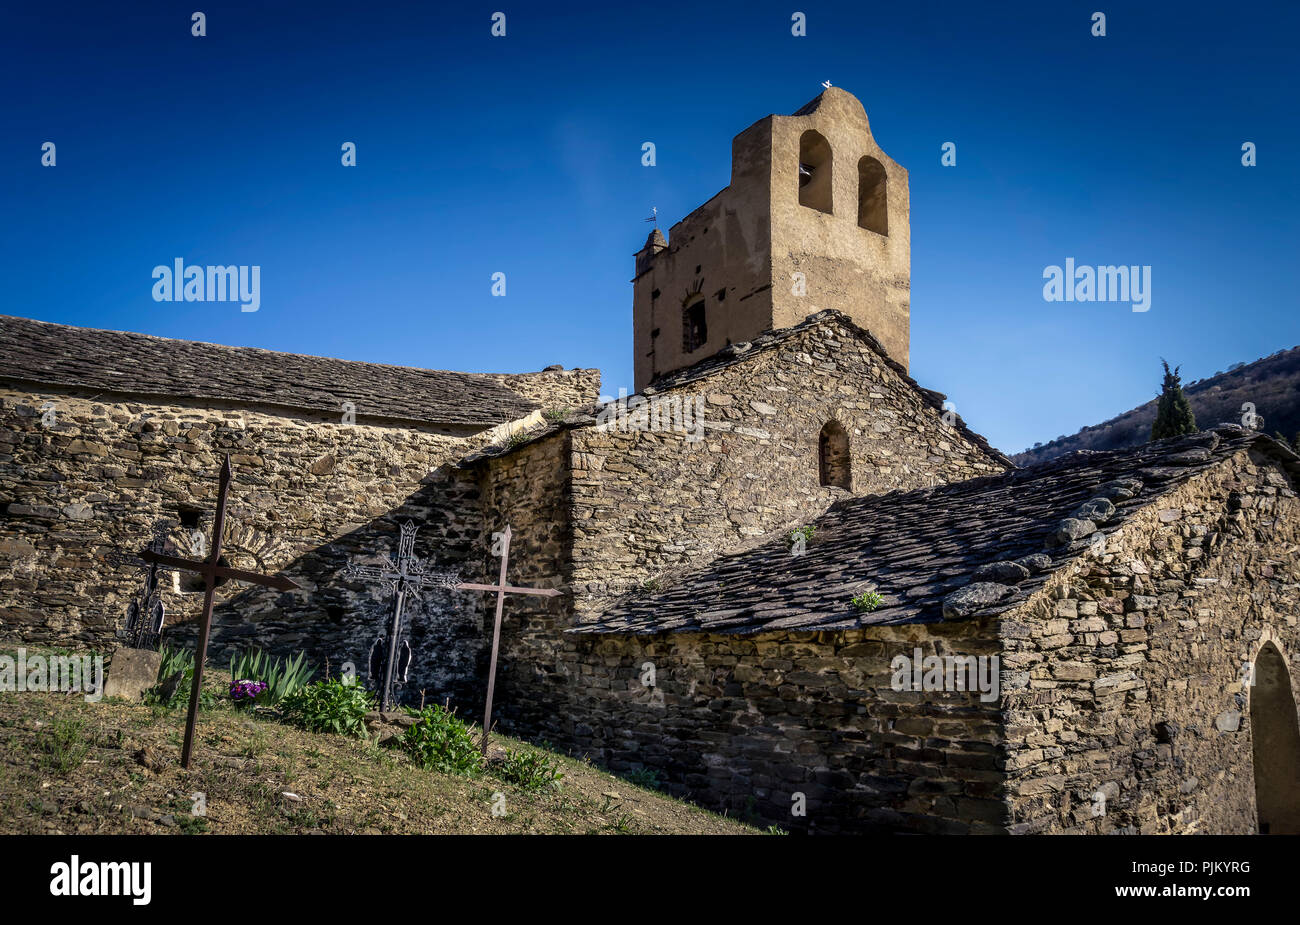 Église Saint André in Evol, built in the XI century, - Stock Image